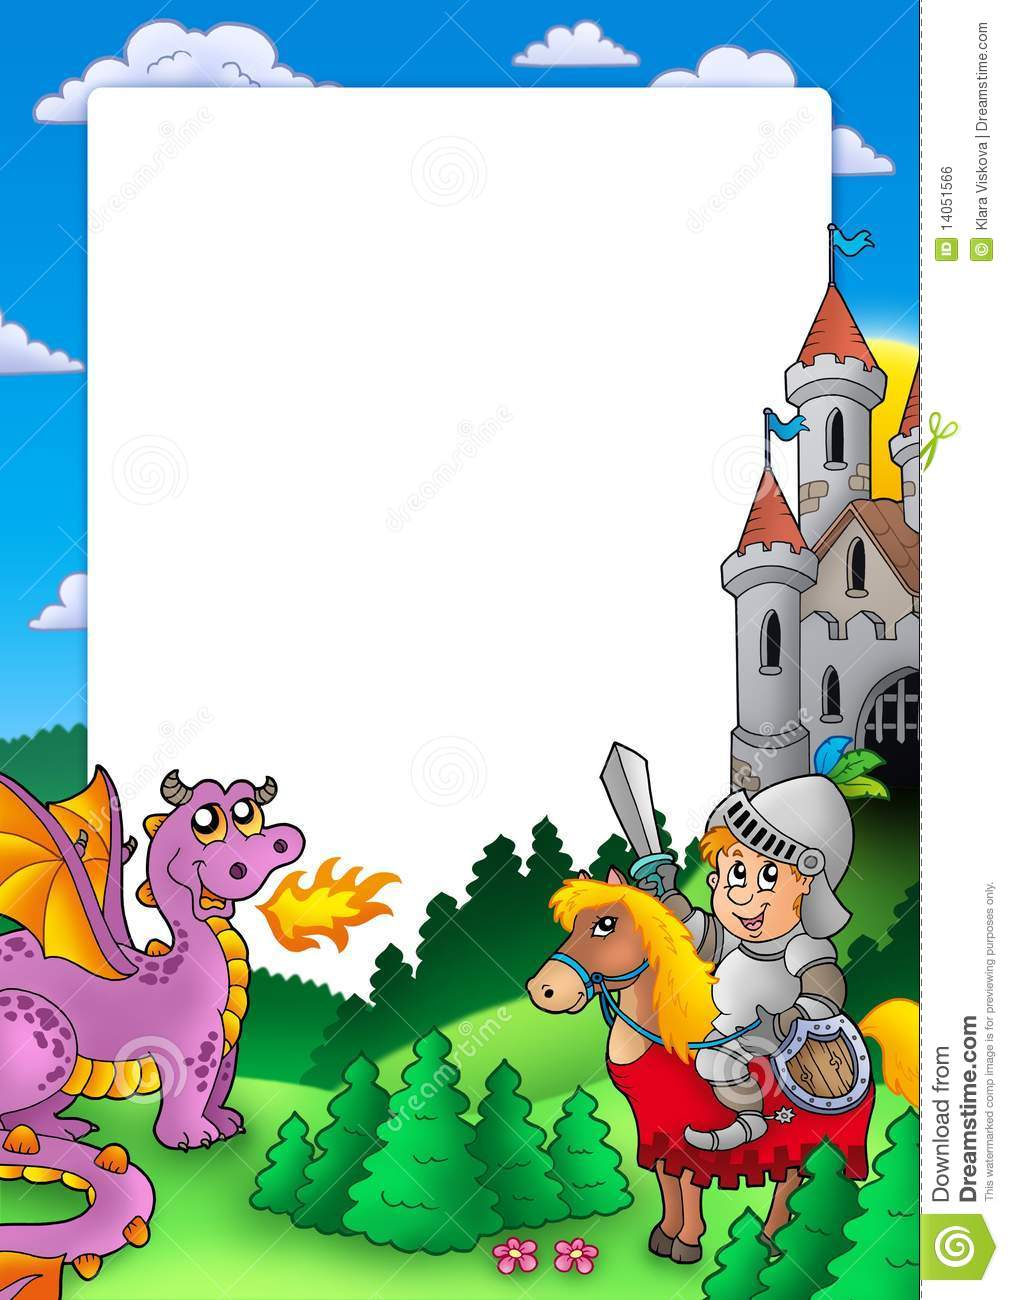 Frame With Knight And Dragon Stock Illustration - Illustration of ...